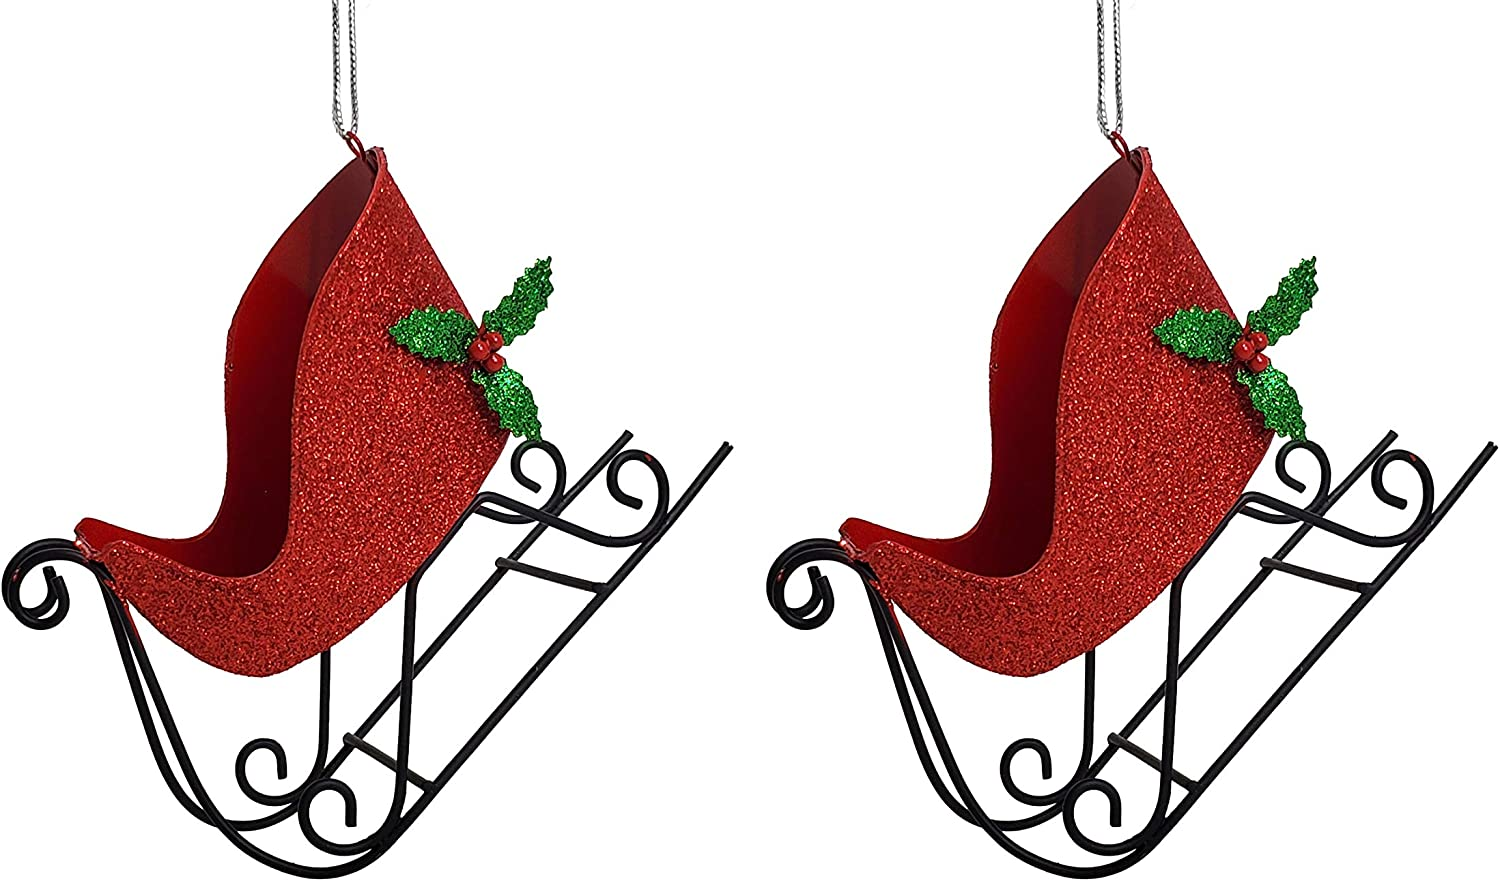 Party Explosions Red Glitter Christmas Santa Sleigh Ornament with Metal Skis - Set of 2